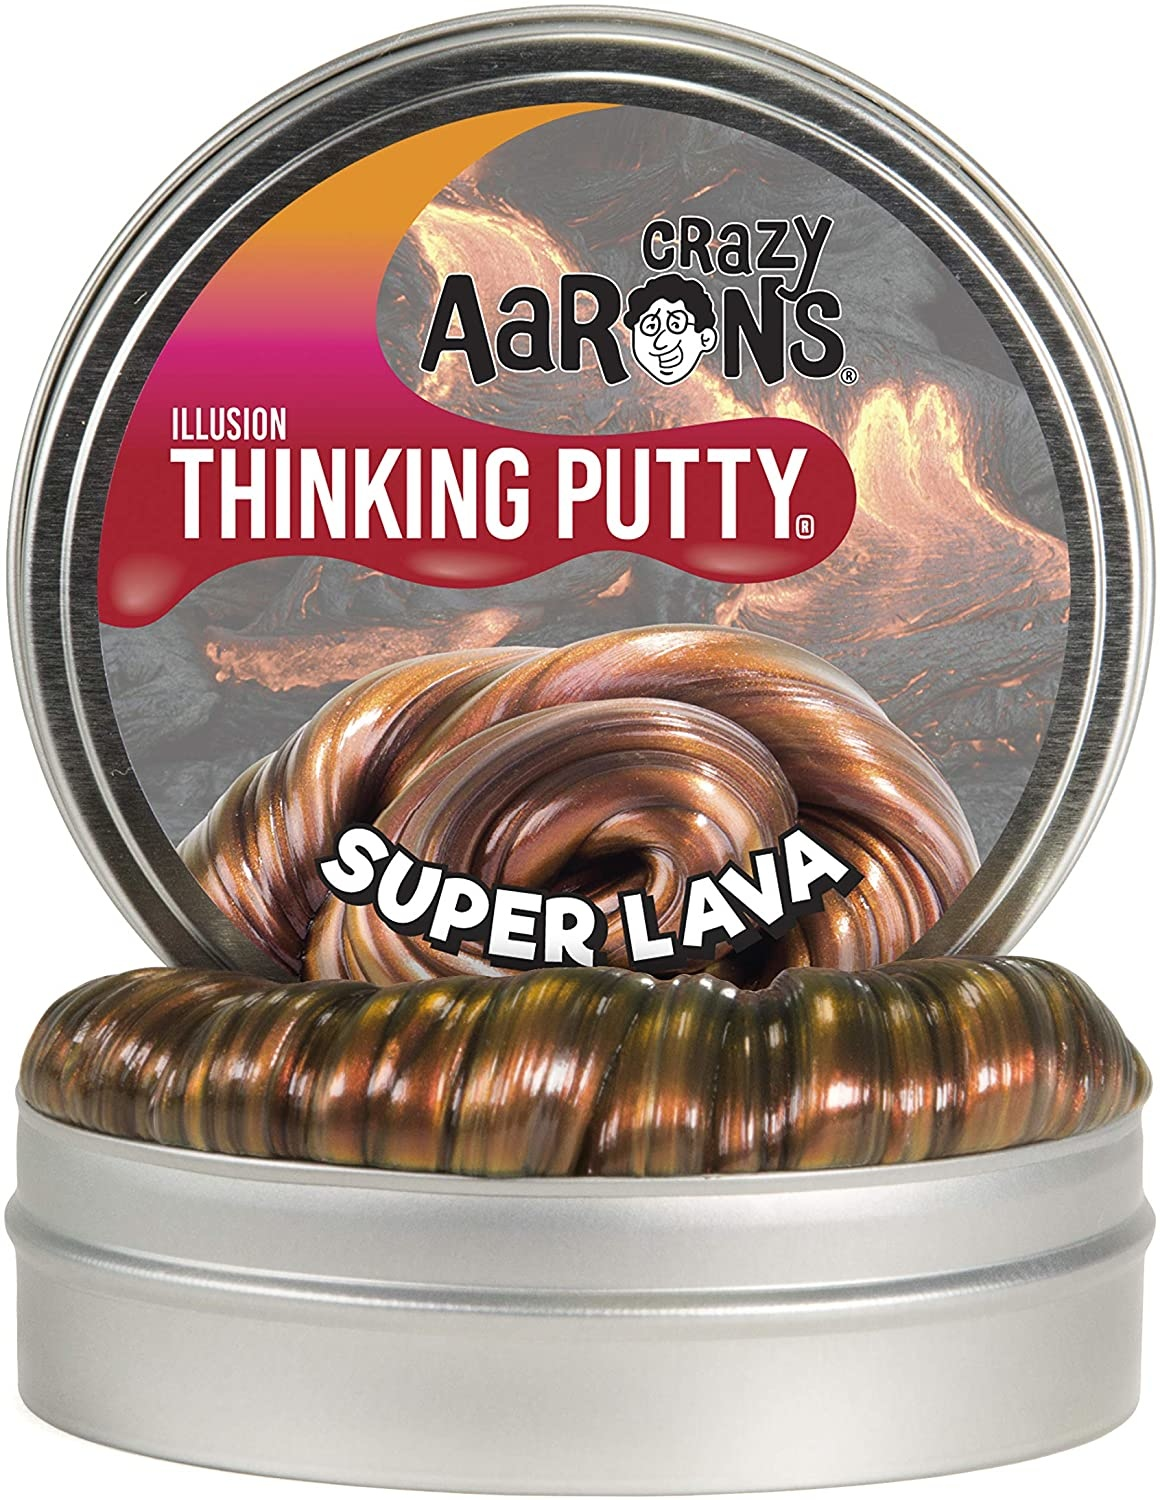 "Crazy Aaron's Thinking Putty 4"" - Super Lava"